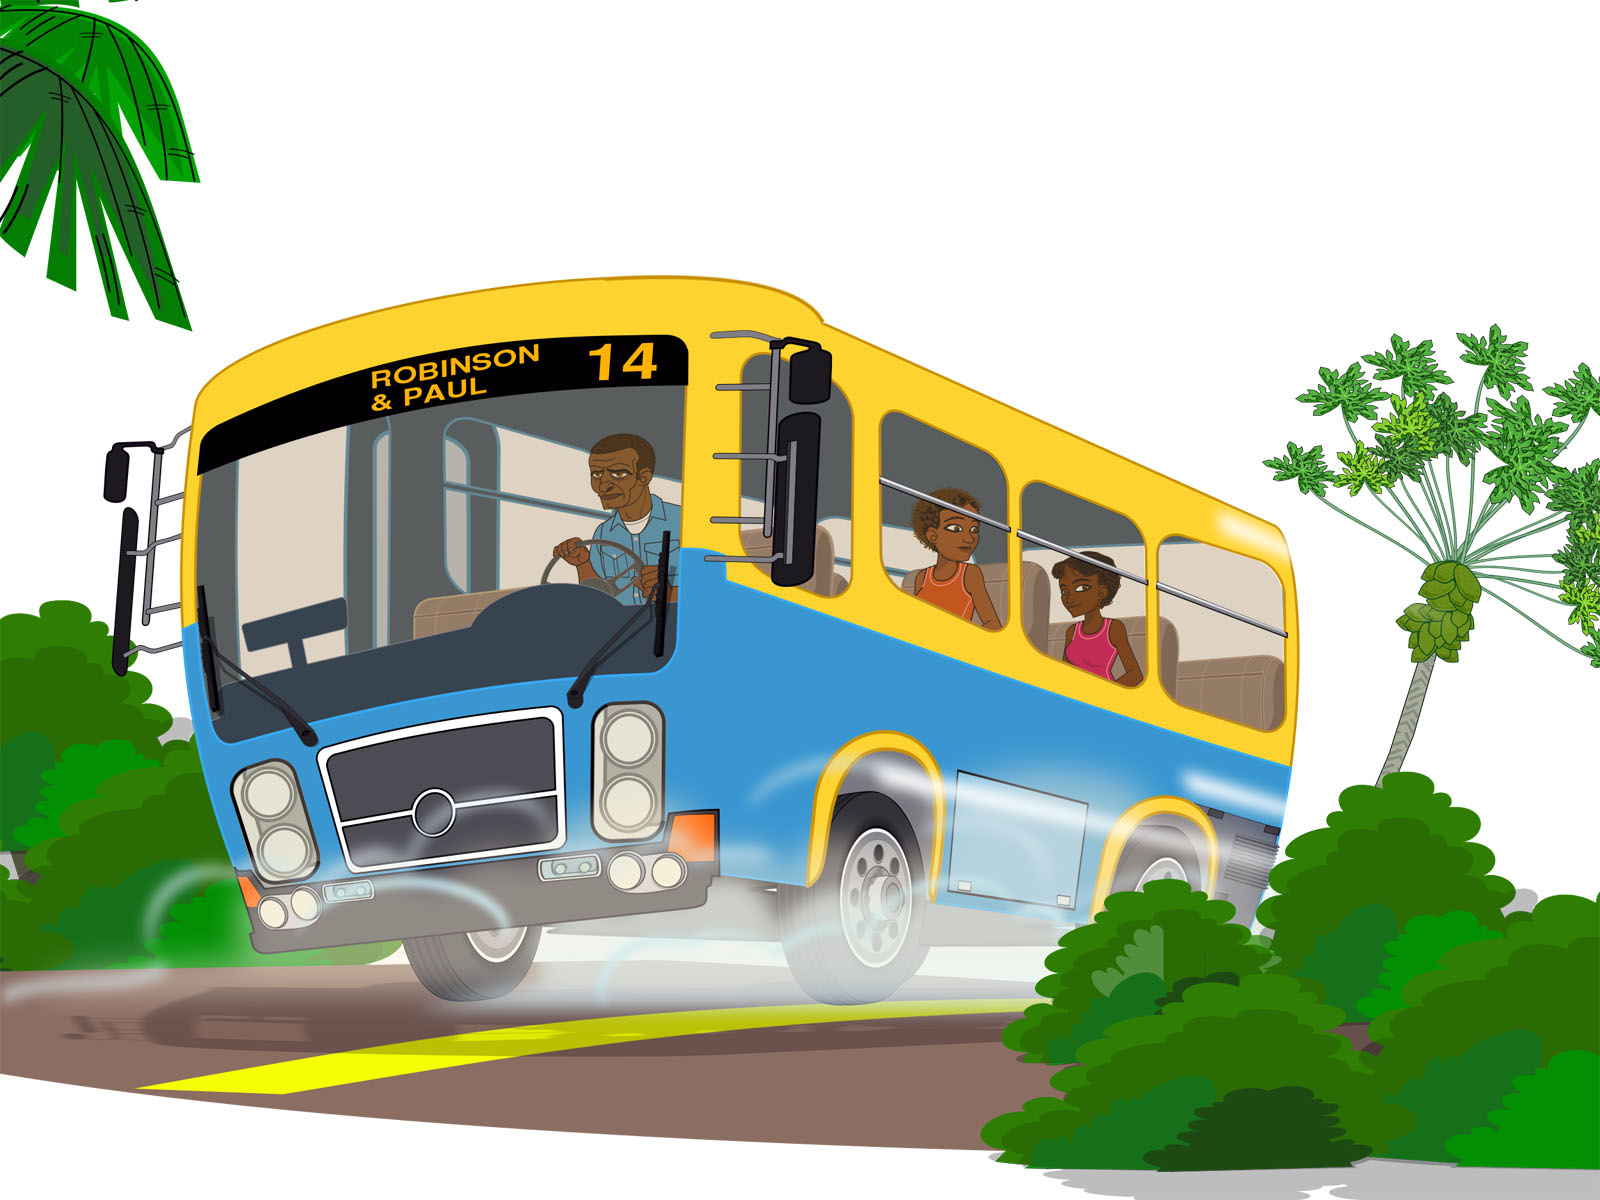 Island school bus Backgrounds   Educational   PPT Backgrounds 1600x1200